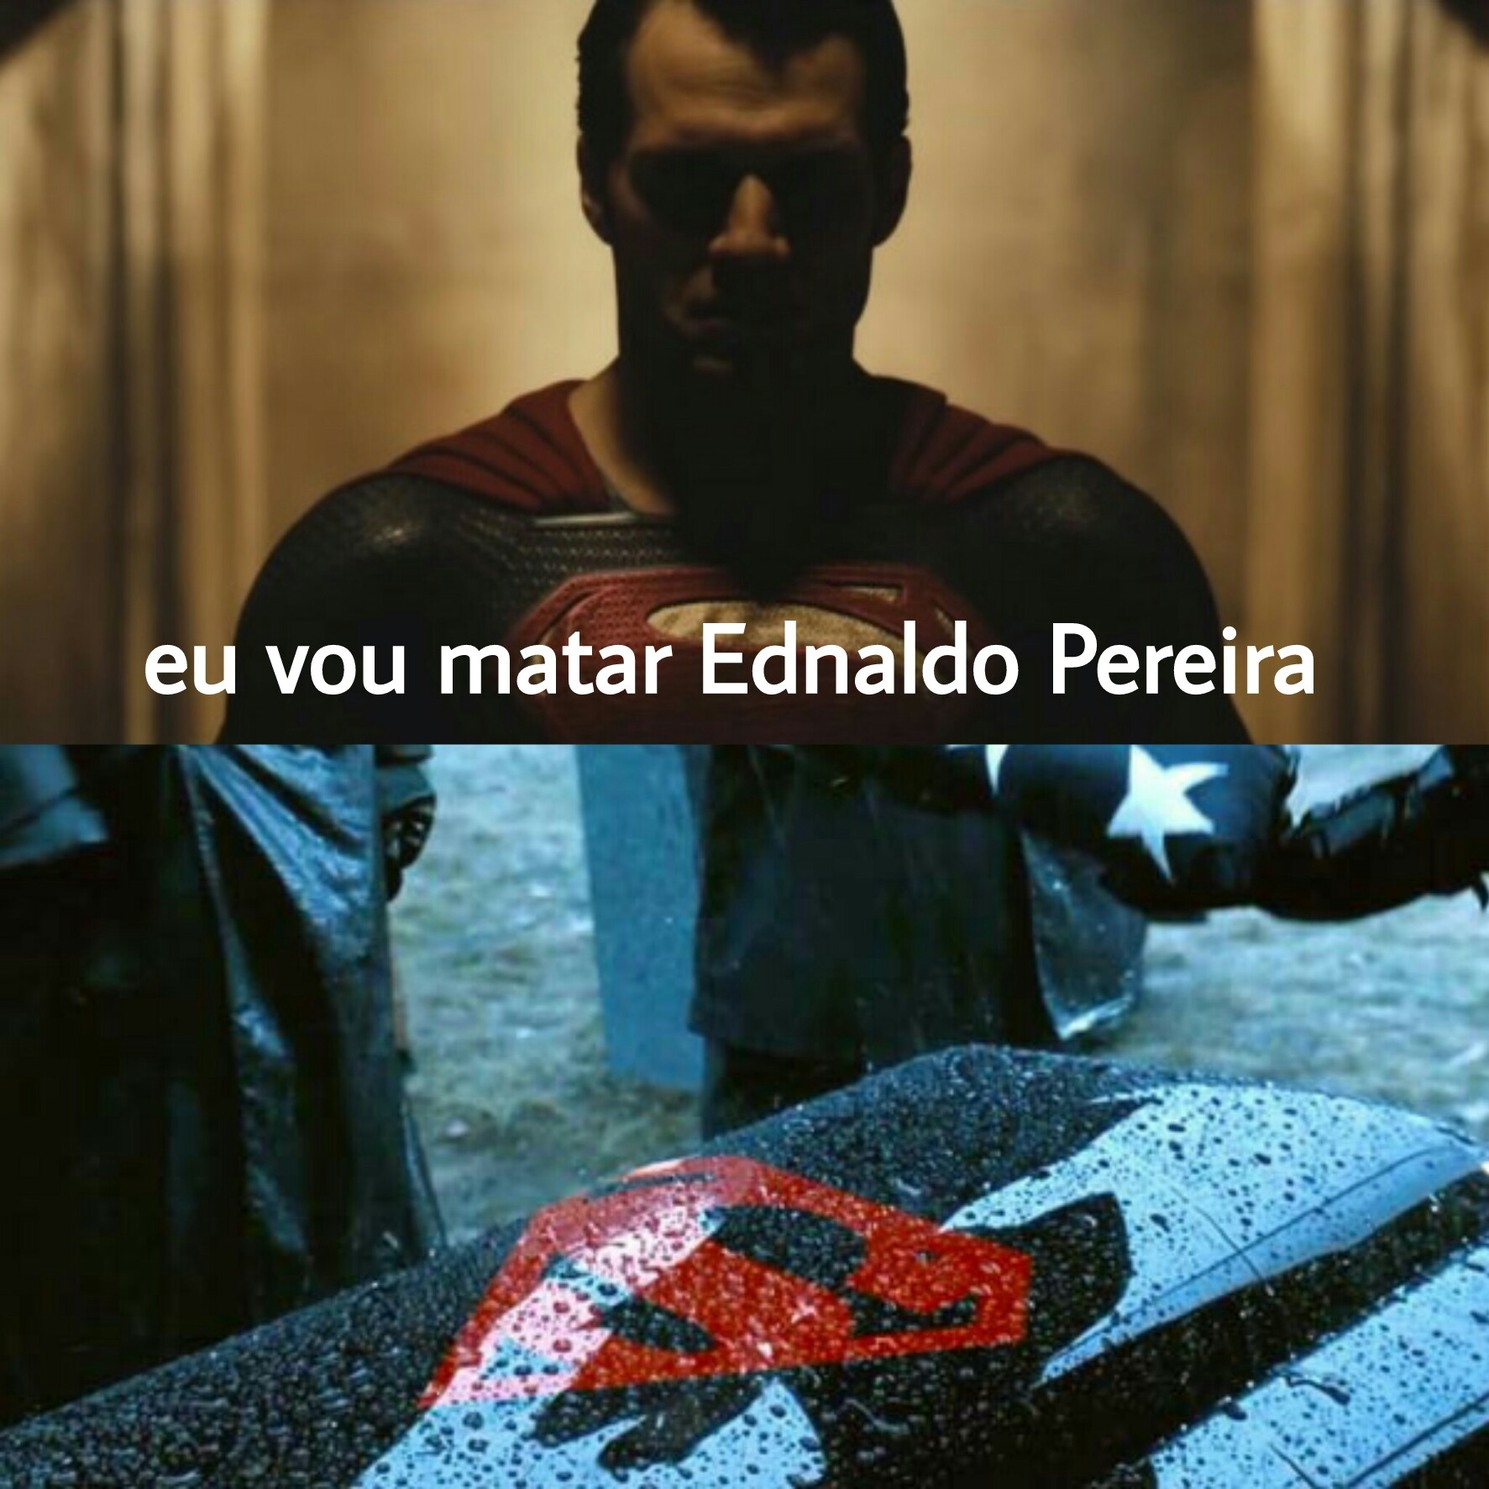 Ednaldo Pereira is unbeatable - meme